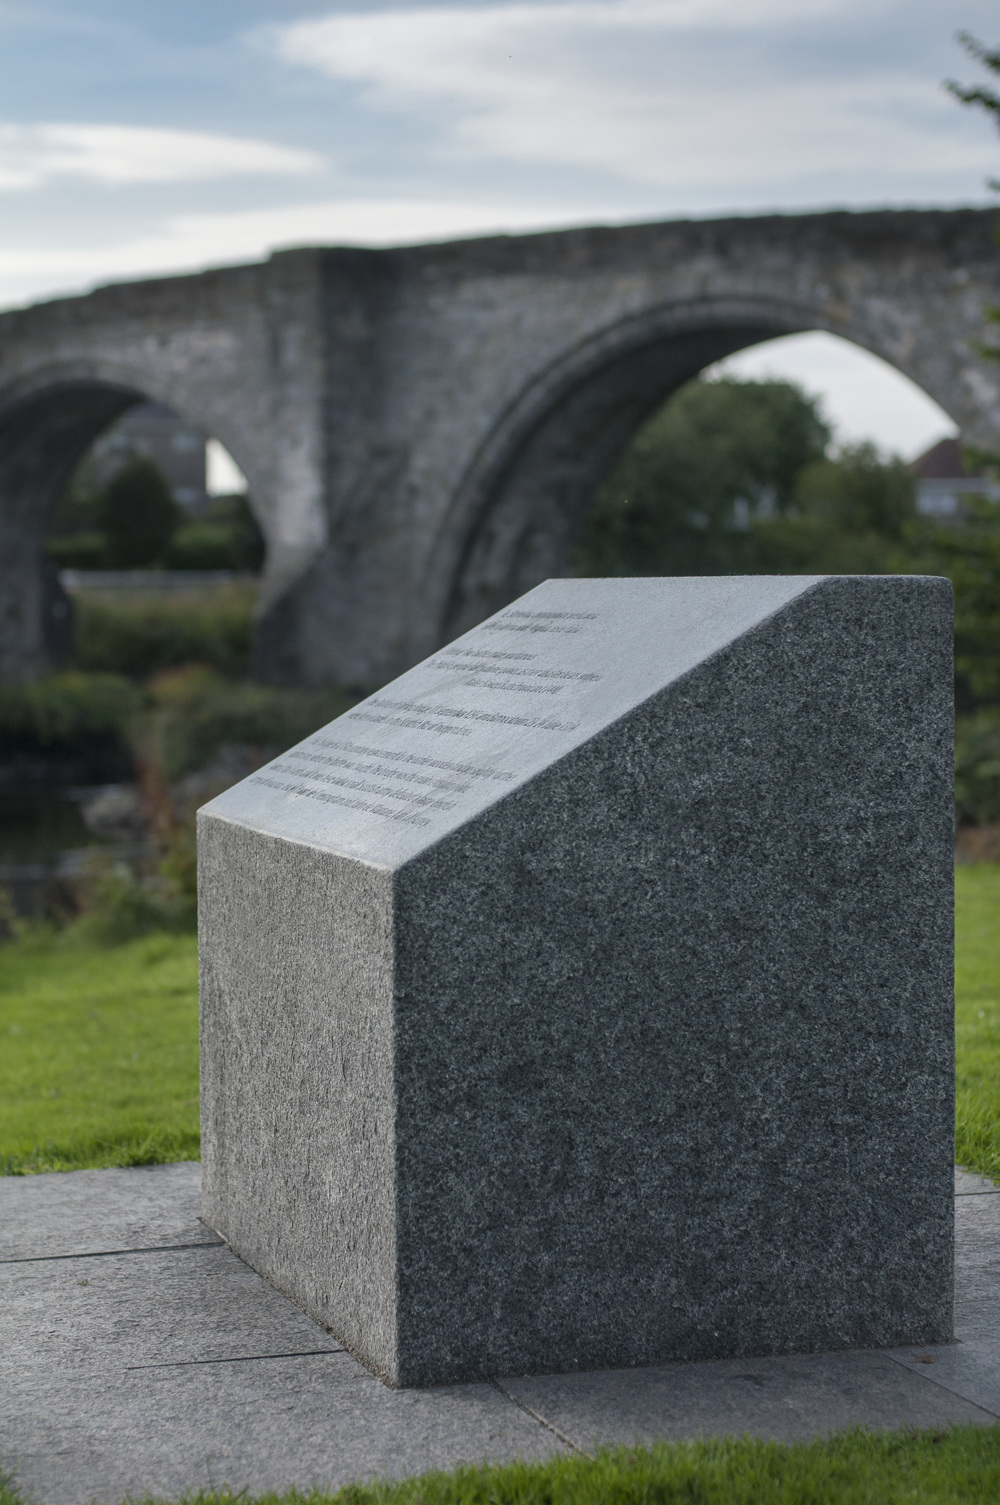 stirling.bridge.memorial.stone.historic.scottish.whin.heritage.stone.suppliers.tradstocks.glasgow.jpg